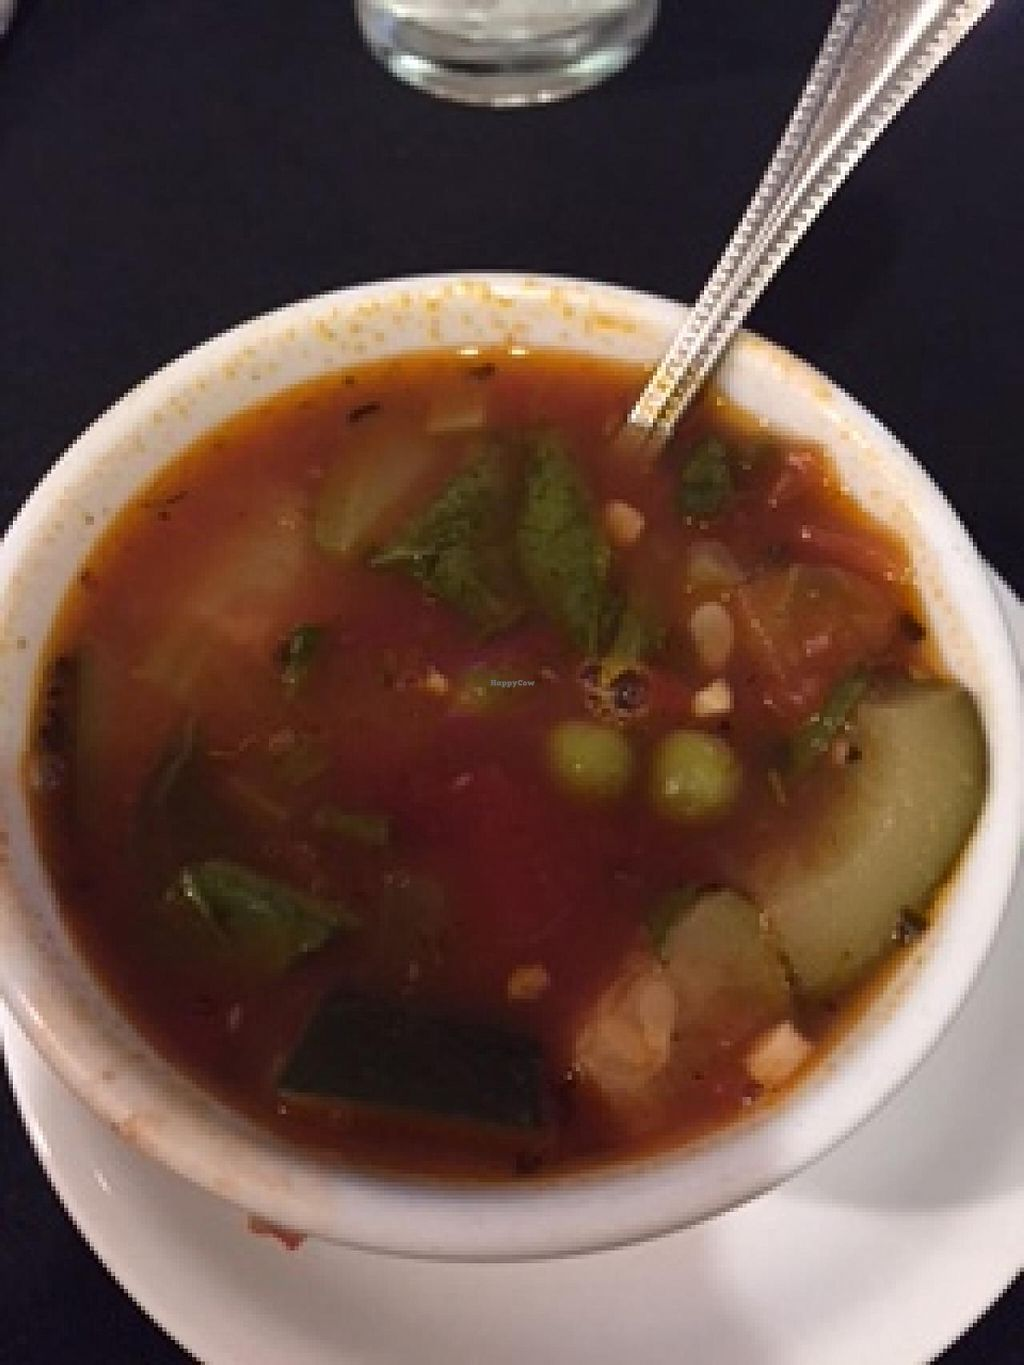 """Photo of Marco Polo Global Restaurant  by <a href=""""/members/profile/AMac"""">AMac</a> <br/>Marco Polo in Salem, OR: Minestrone Soup <br/> April 11, 2015  - <a href='/contact/abuse/image/17030/98675'>Report</a>"""